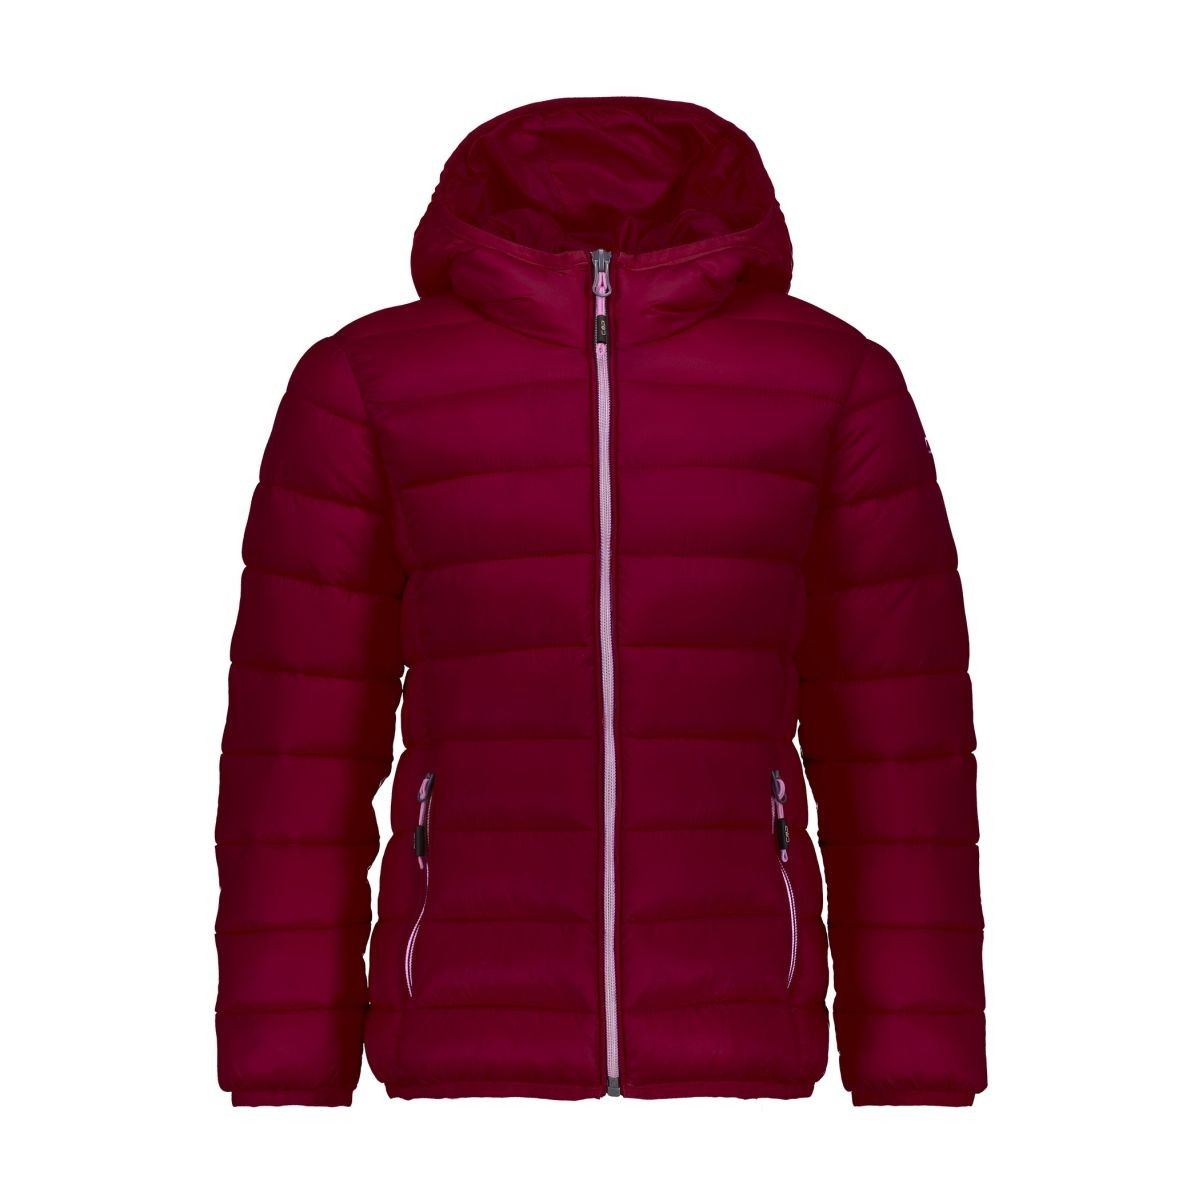 CAMPAGNOLO - GIRL JACKET FIX HOOD 3Z16775 - GIRLS